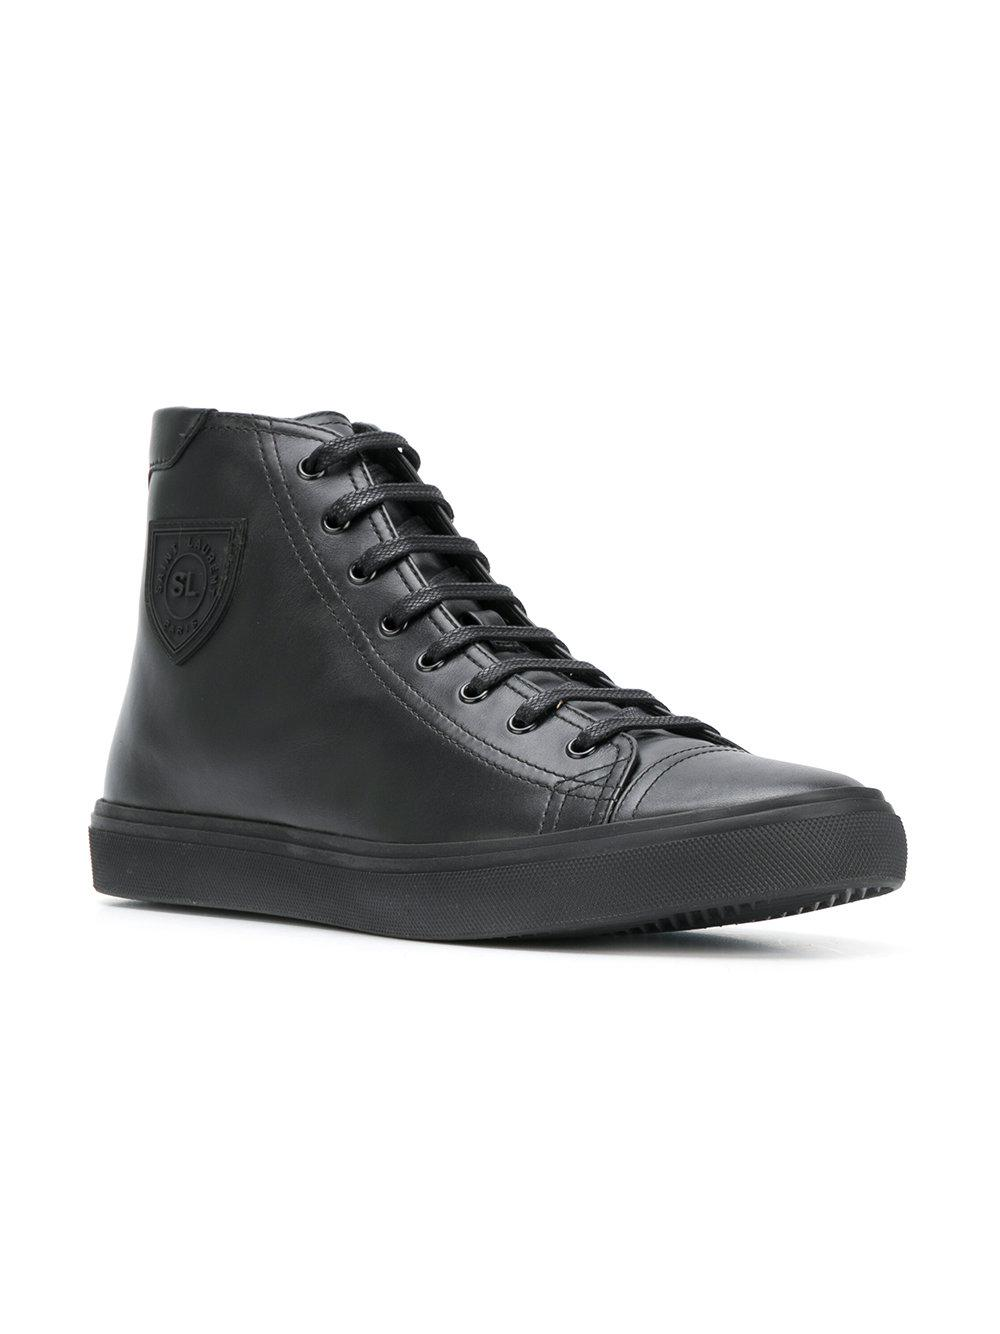 80b4dba3df7c4 Saint Laurent Bedford Sneakers in Black for Men - Lyst